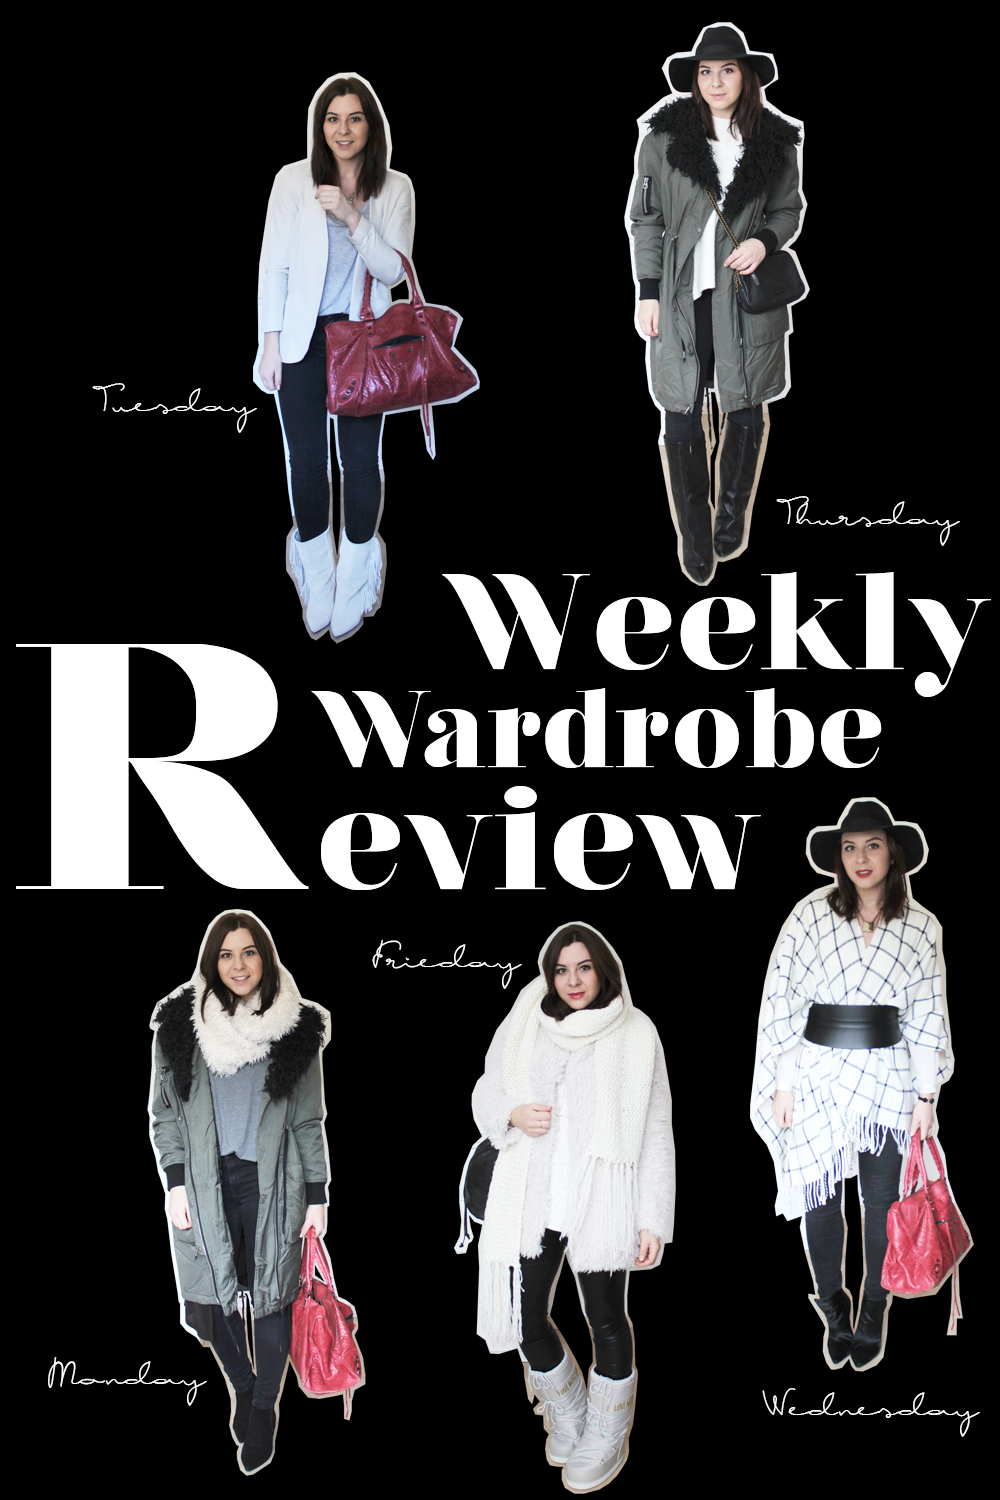 weekly wardrobe review, blogger tirol, whoismocca, isabel mariant, balenciaga, topshop, fedora, schlapphut, liebeskind, moschino, moon boots, cape